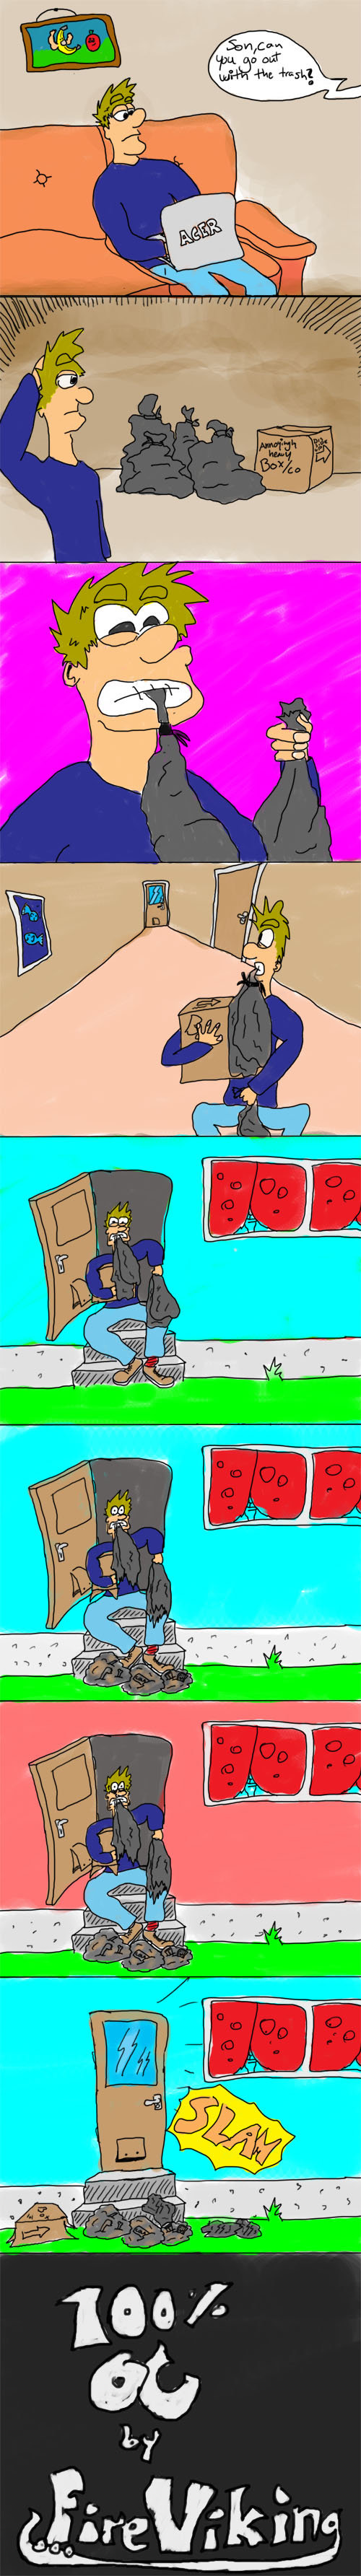 Taking out the trash. My first little attemt at being somewhat funny c: Leave a green one if you like, then you're awesome!.. This isn't exactly funny...